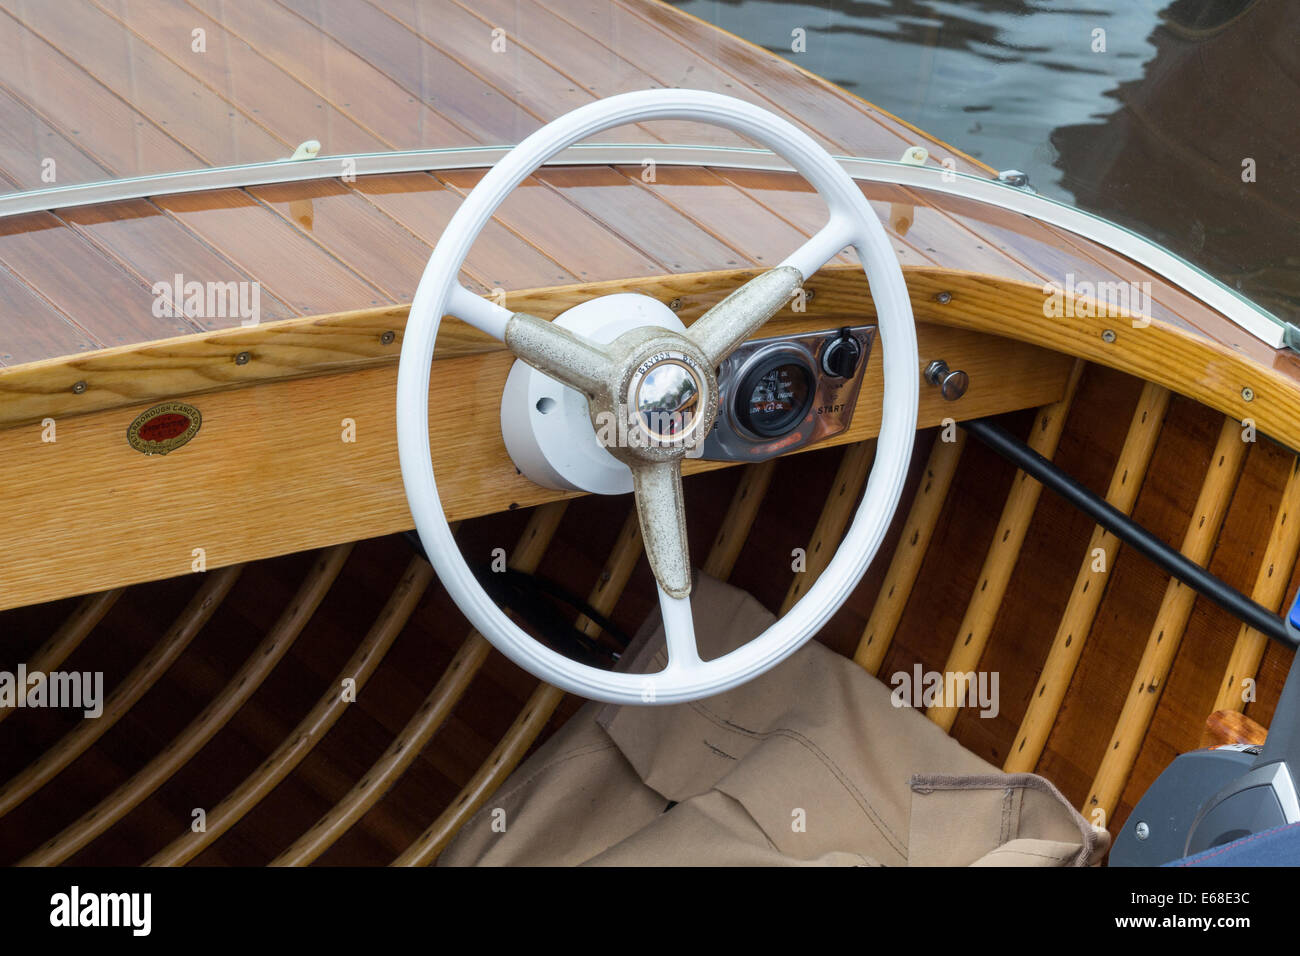 Steering Wheel On Classic Boat Made Of Wood Stock Photo Alamy